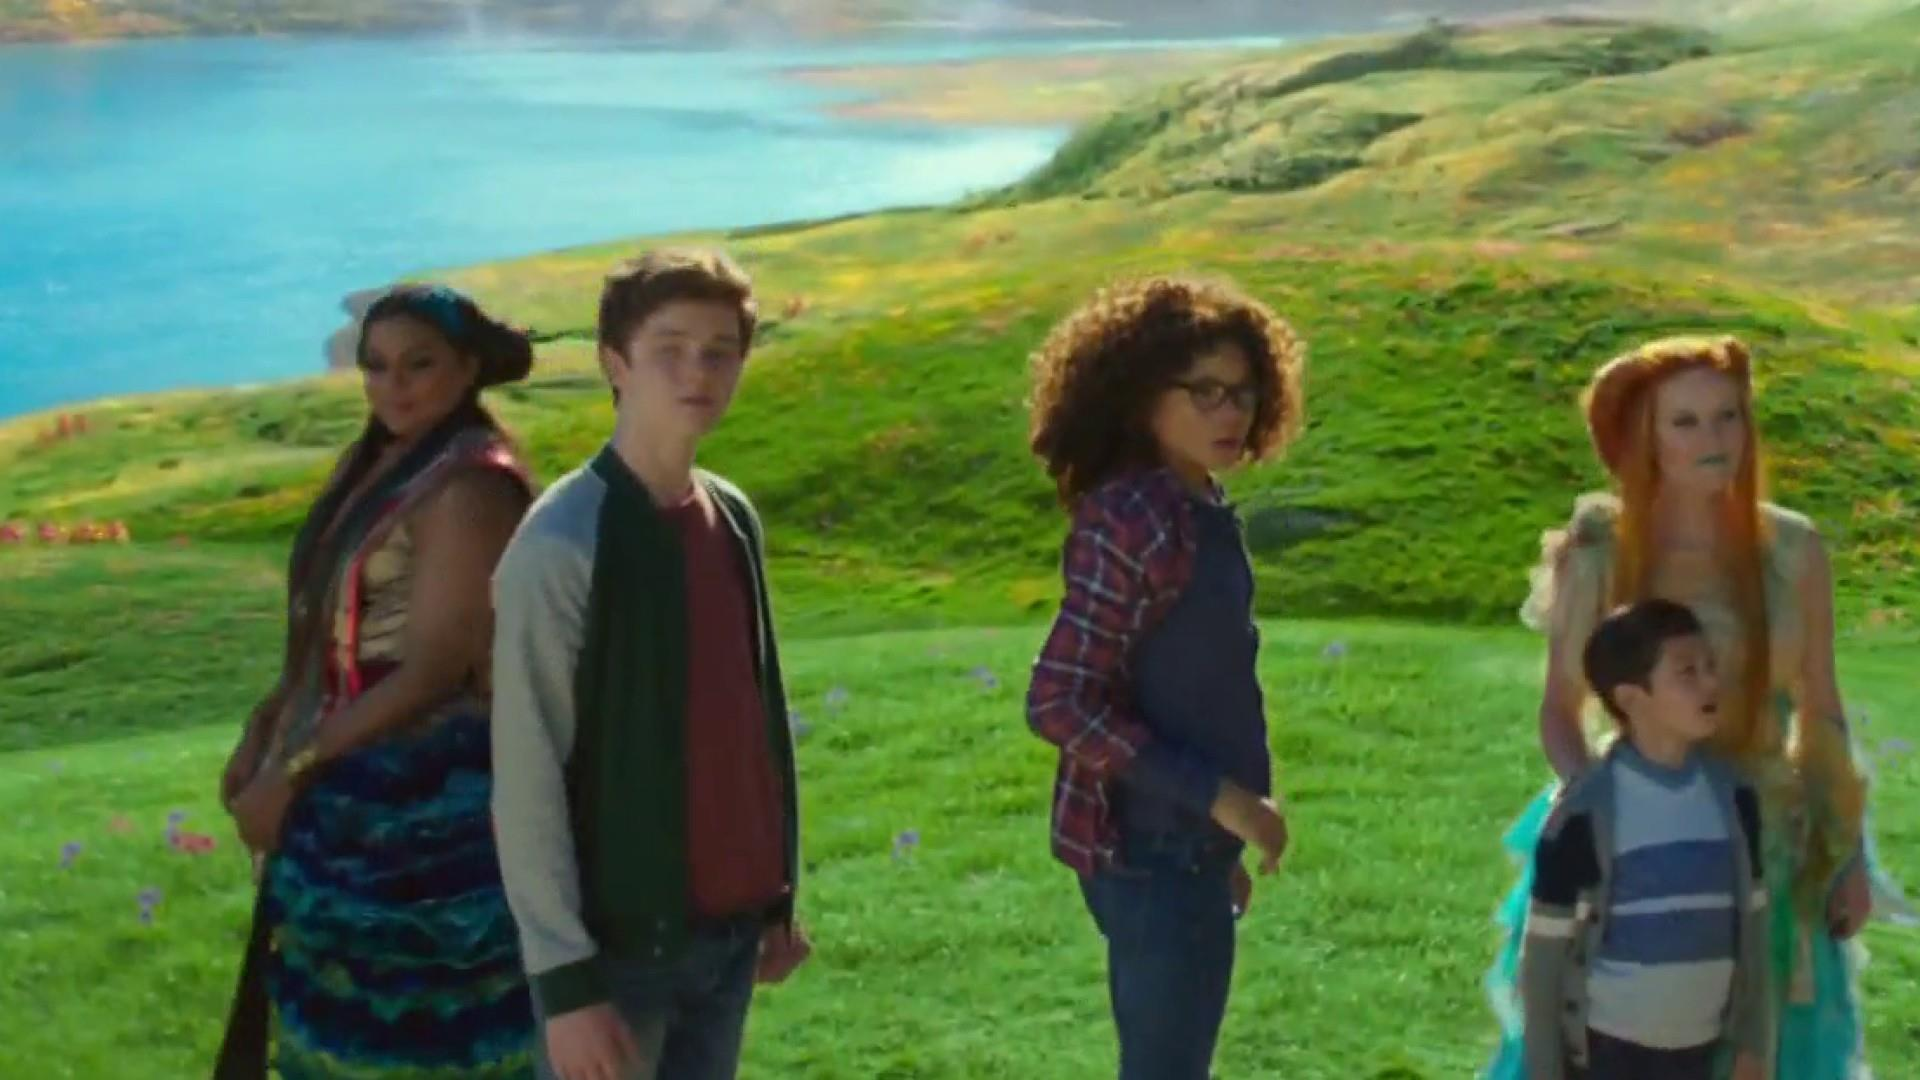 A Wrinkle In Time Aims To Break Boundaries And Inspire